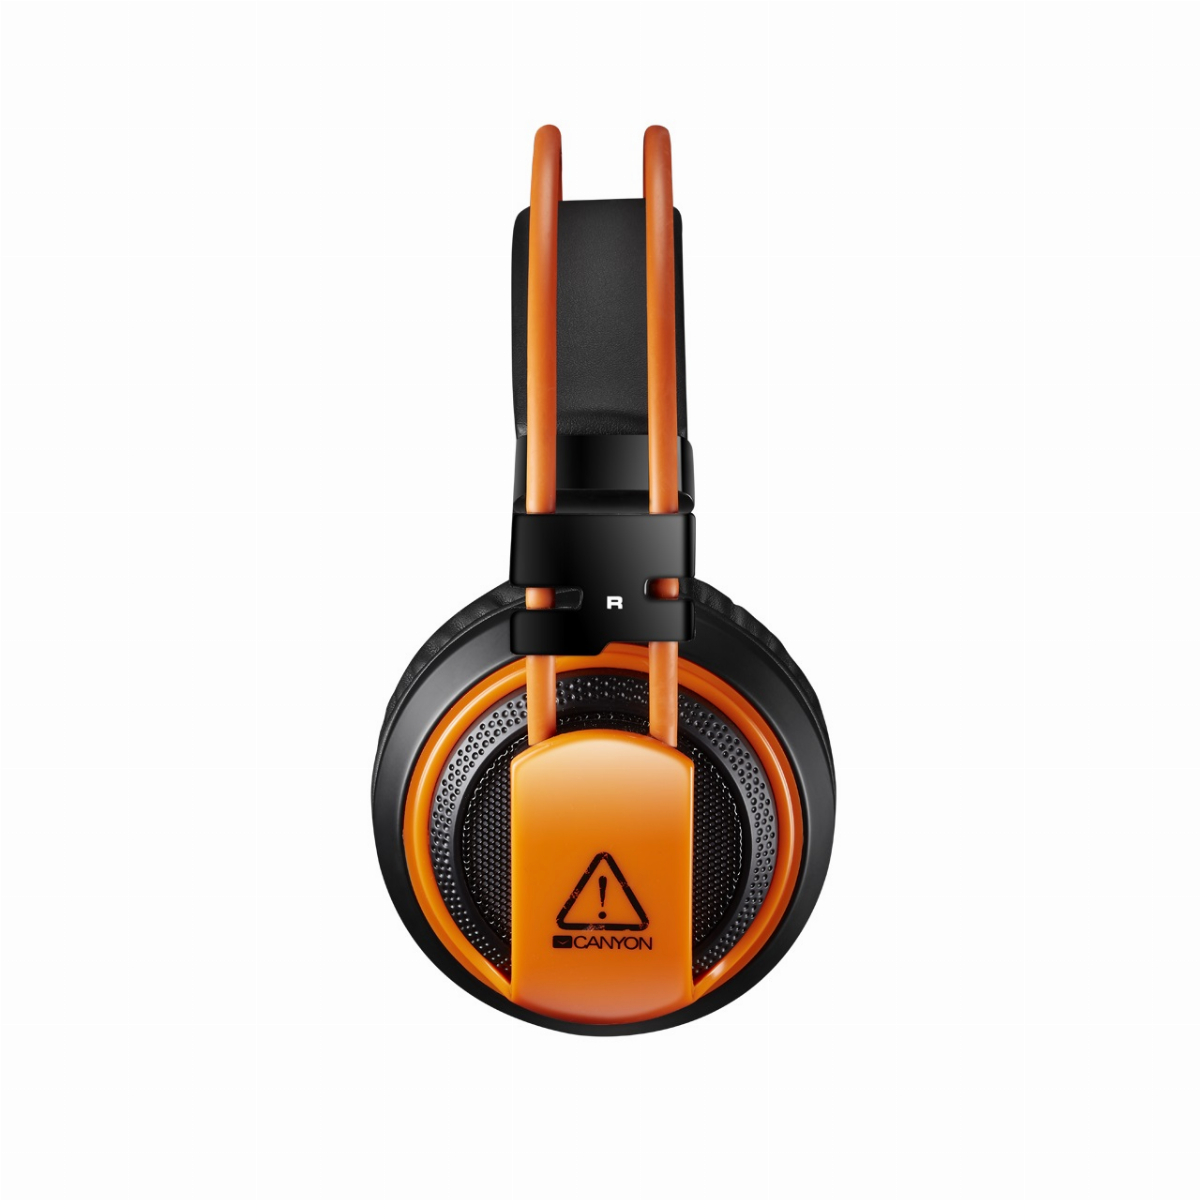 Геймърски слушалки CANYON Corax CND-SGHS5A Gaming headset 3.5mm jack plus USB Снимка 2